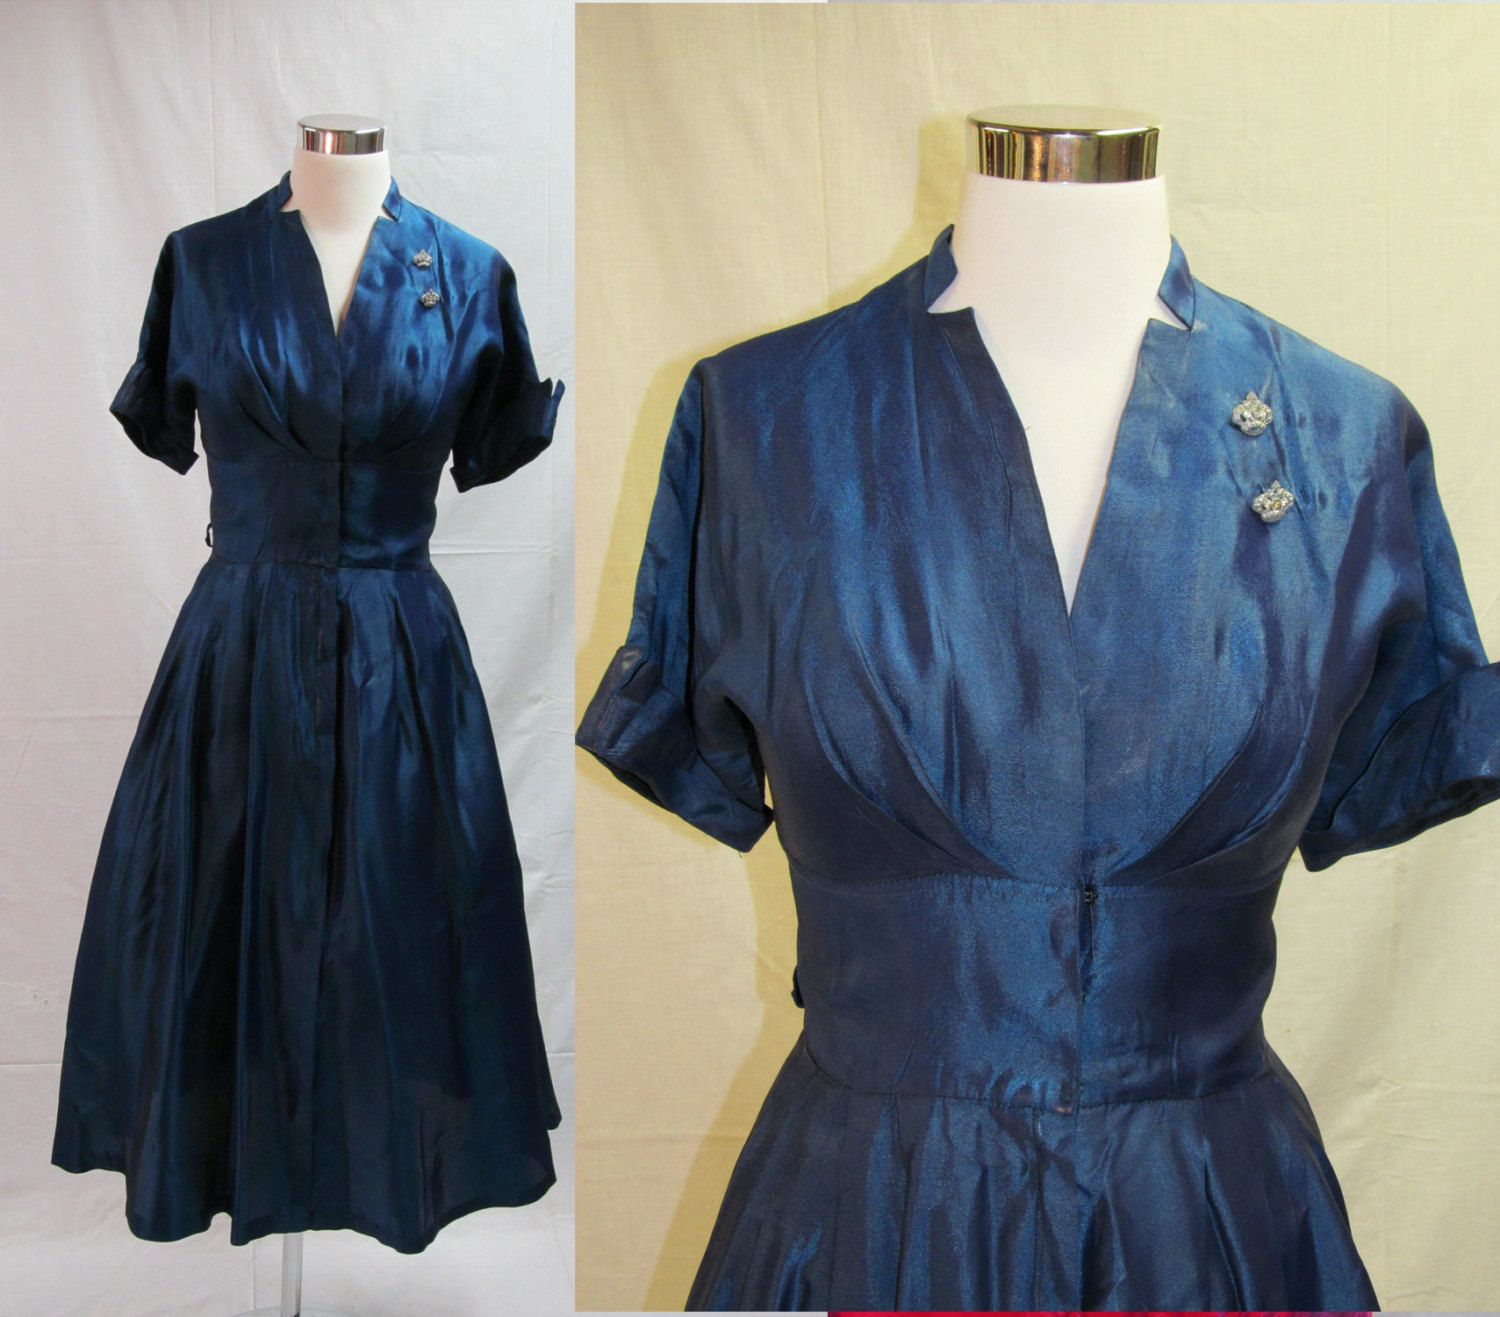 Kitchen Cabinet With Annabel Crabb: 40s 50s Midnight Blue Party Dress / Cocktail Dress